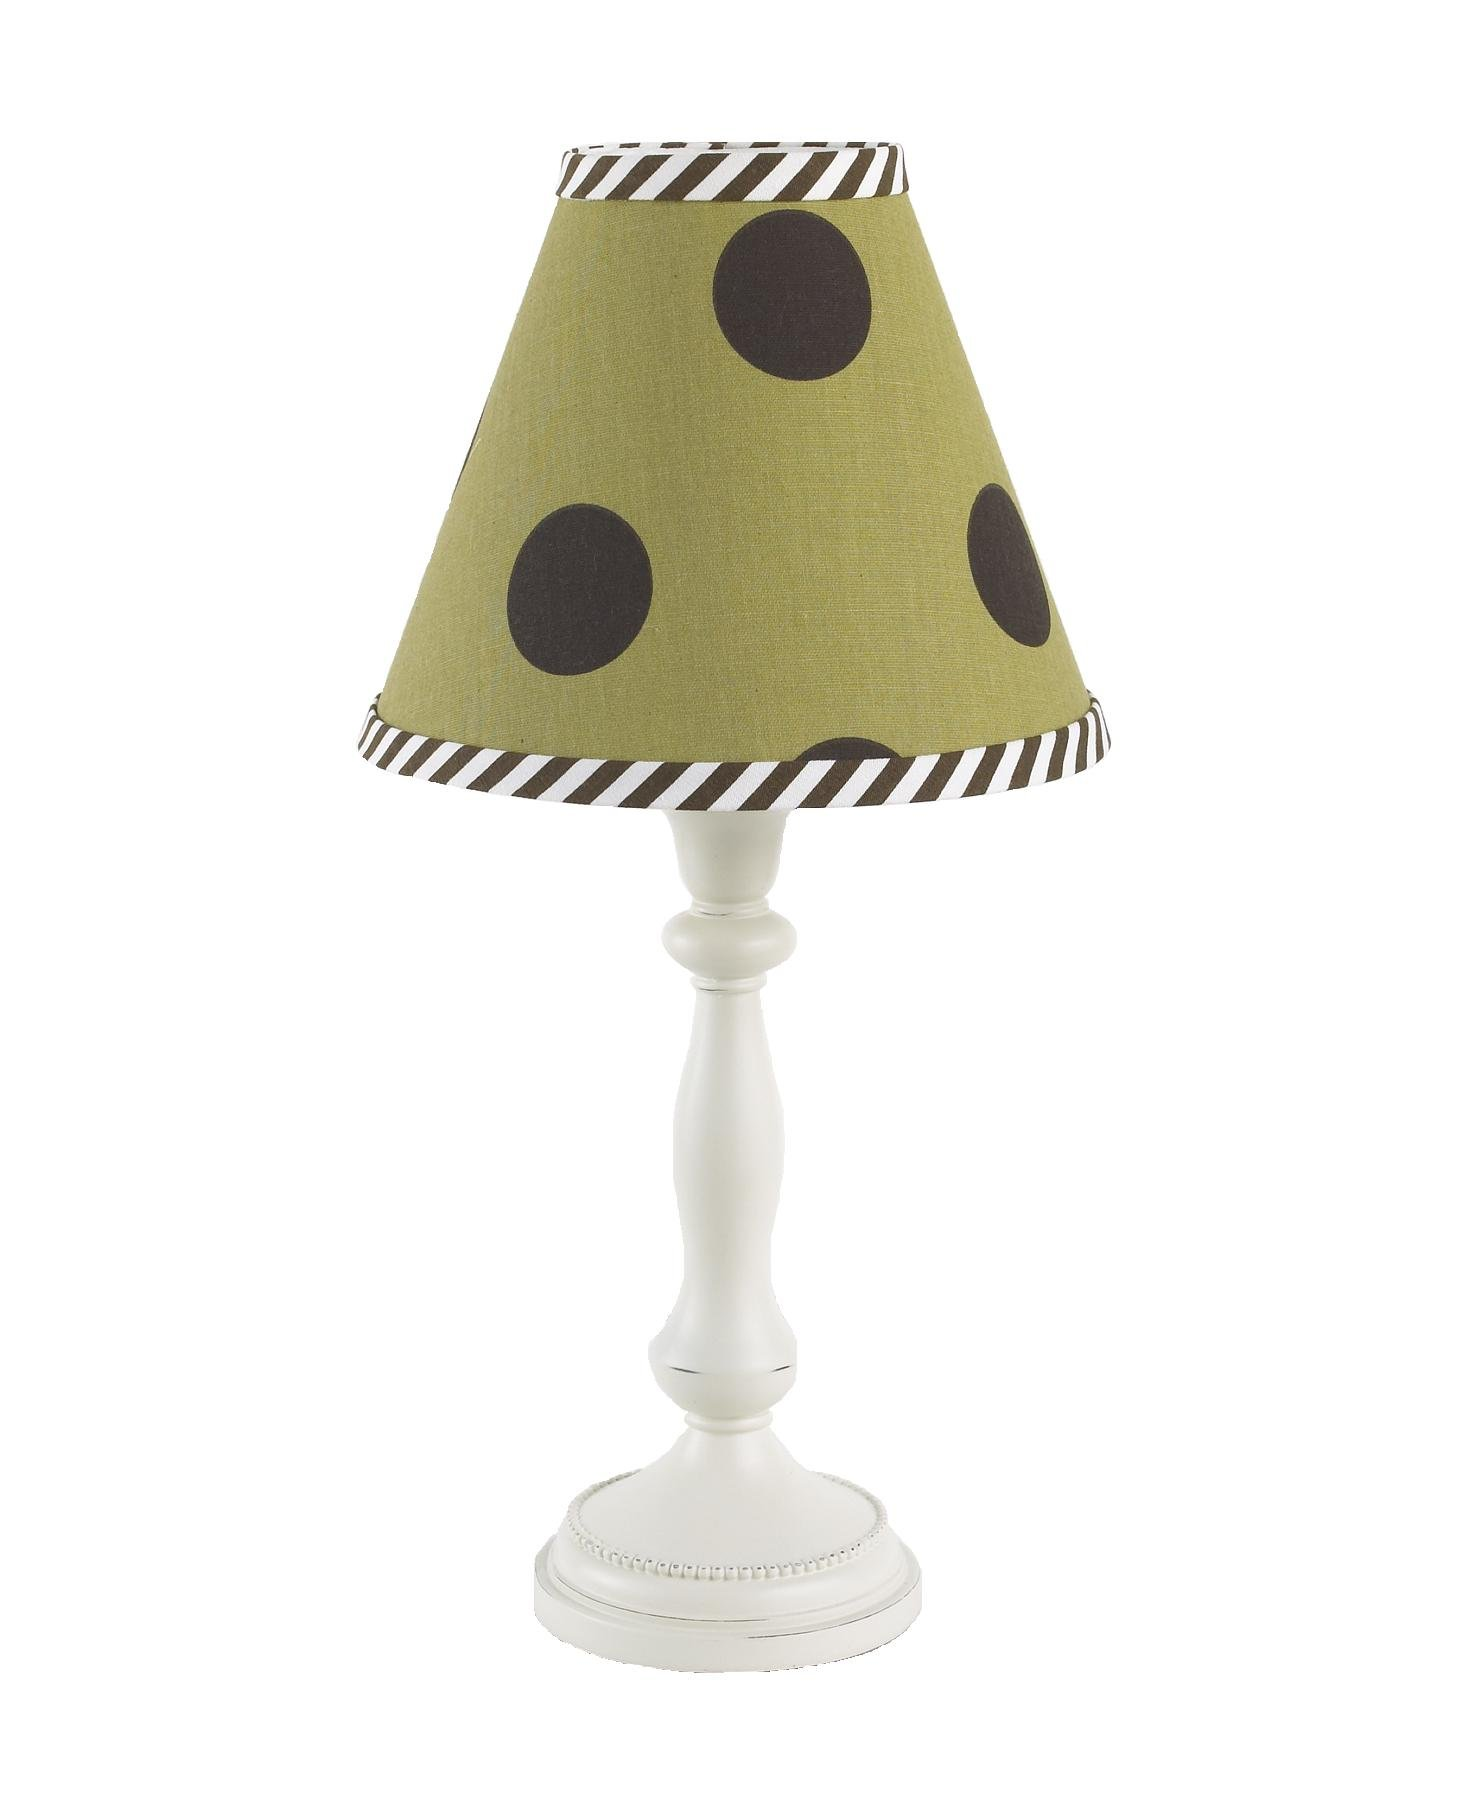 Cotton Tale Designs Aye Matie Standard Lamp and Shade